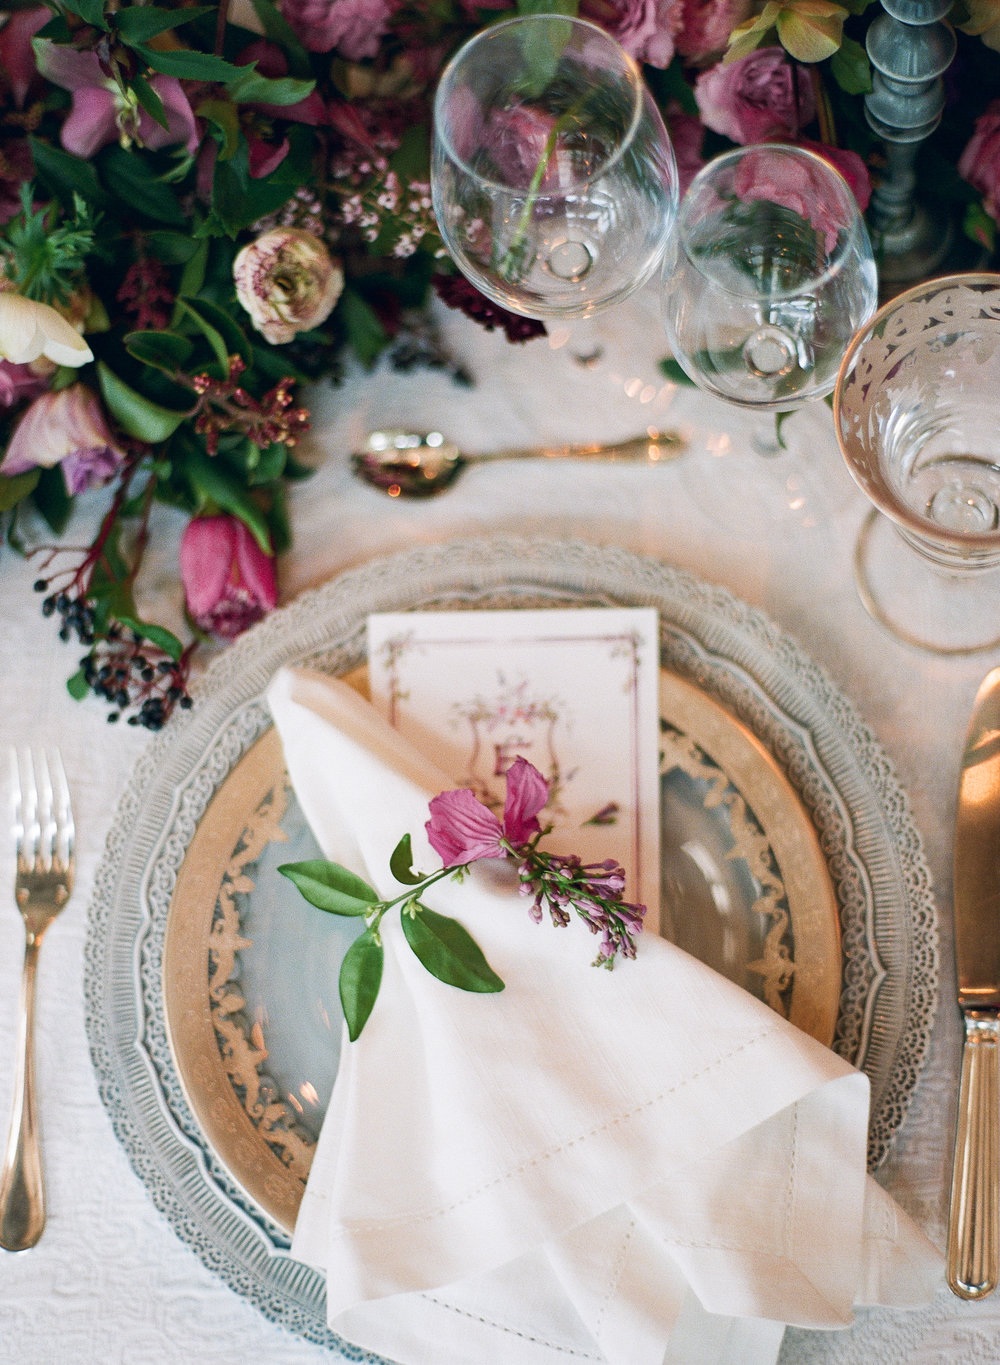 table setting designed by The Wildflowers | featured on Style Me Pretty | follow along on instagram: @ thewildflowers_com